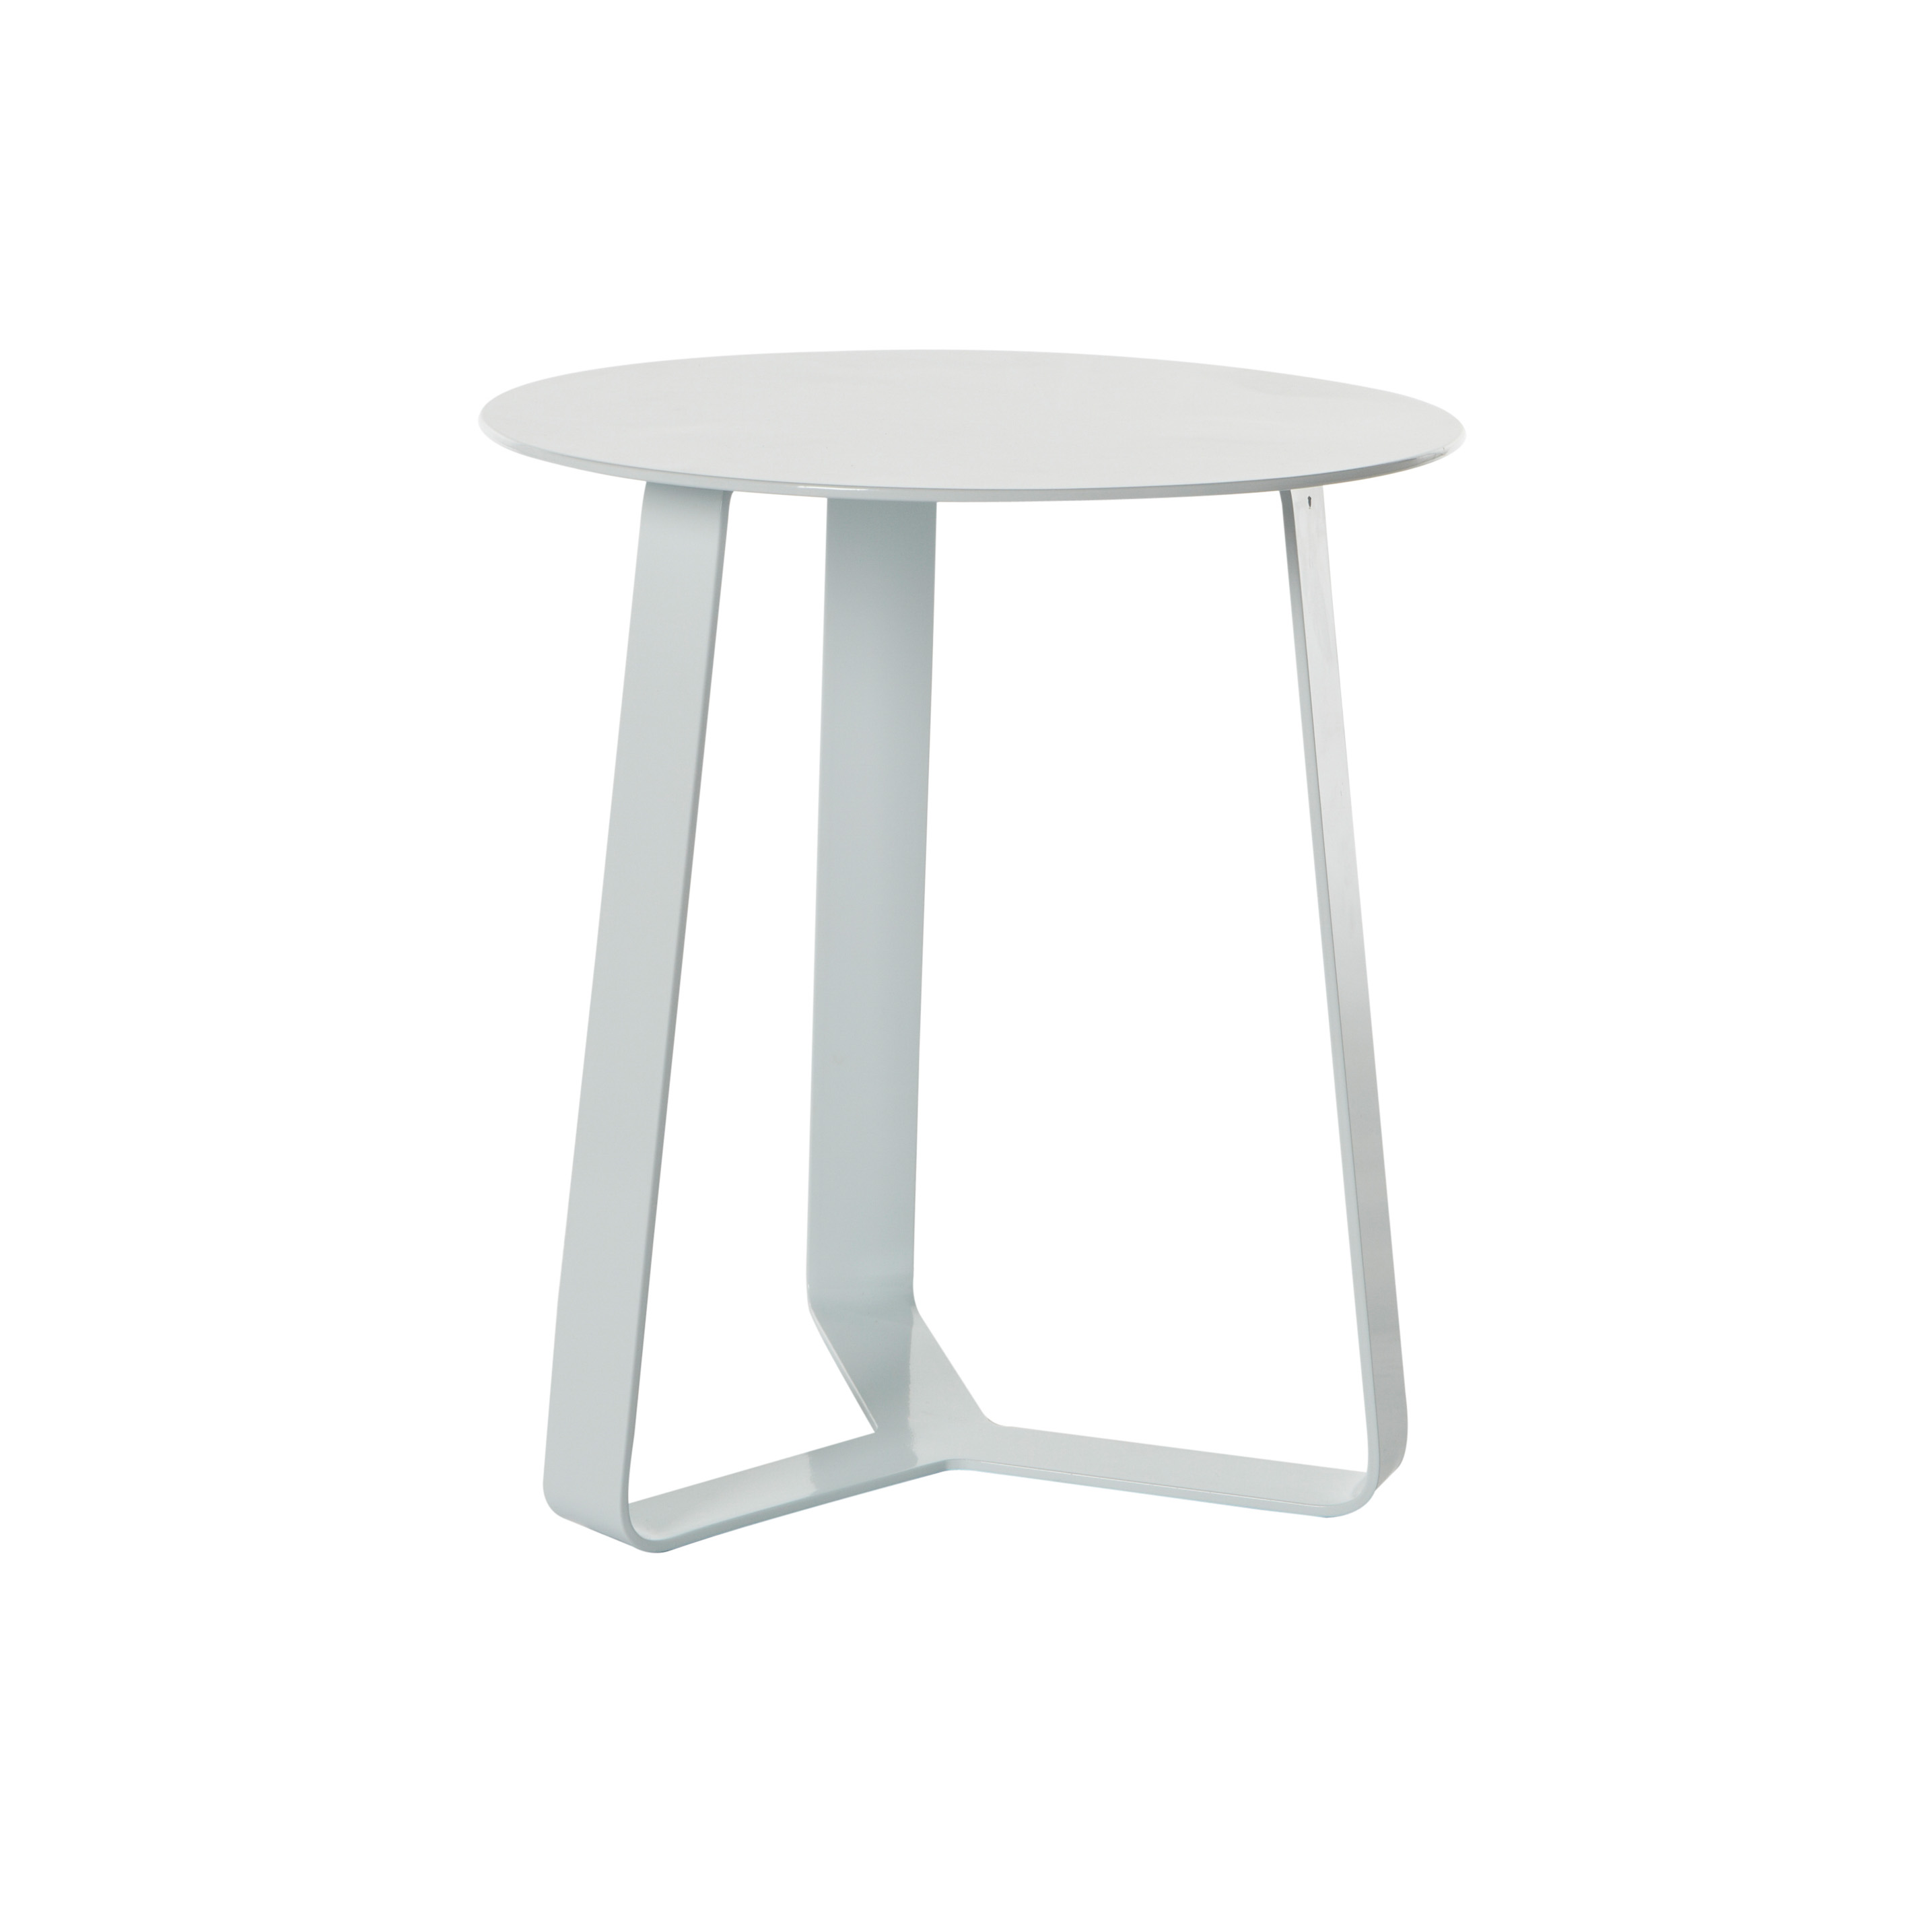 Furniture Hero-Images Coffee-Side-Tables-and-Trolleys cancun-ali-round-side-table-02